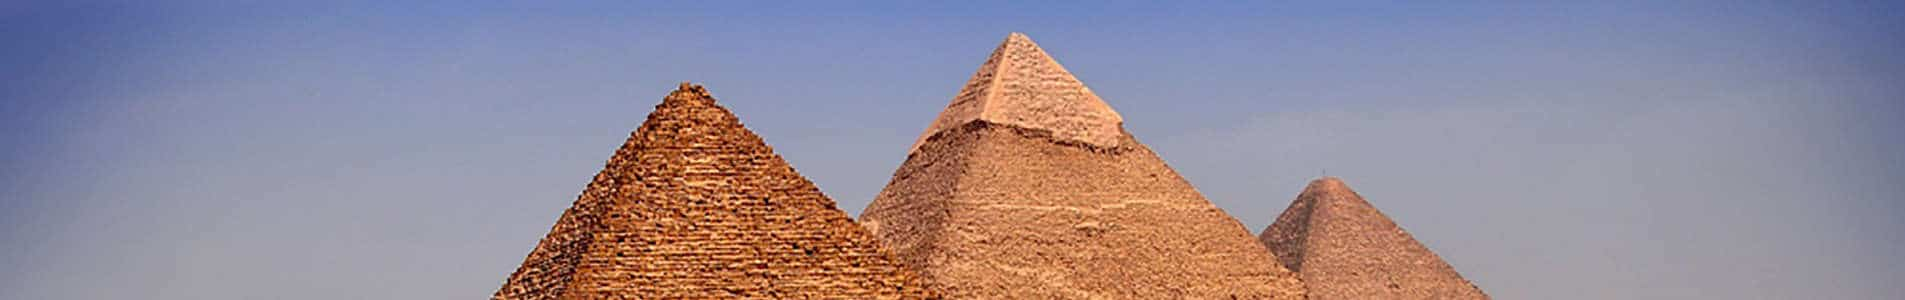 The Great Pyramids of Egypt - Giza